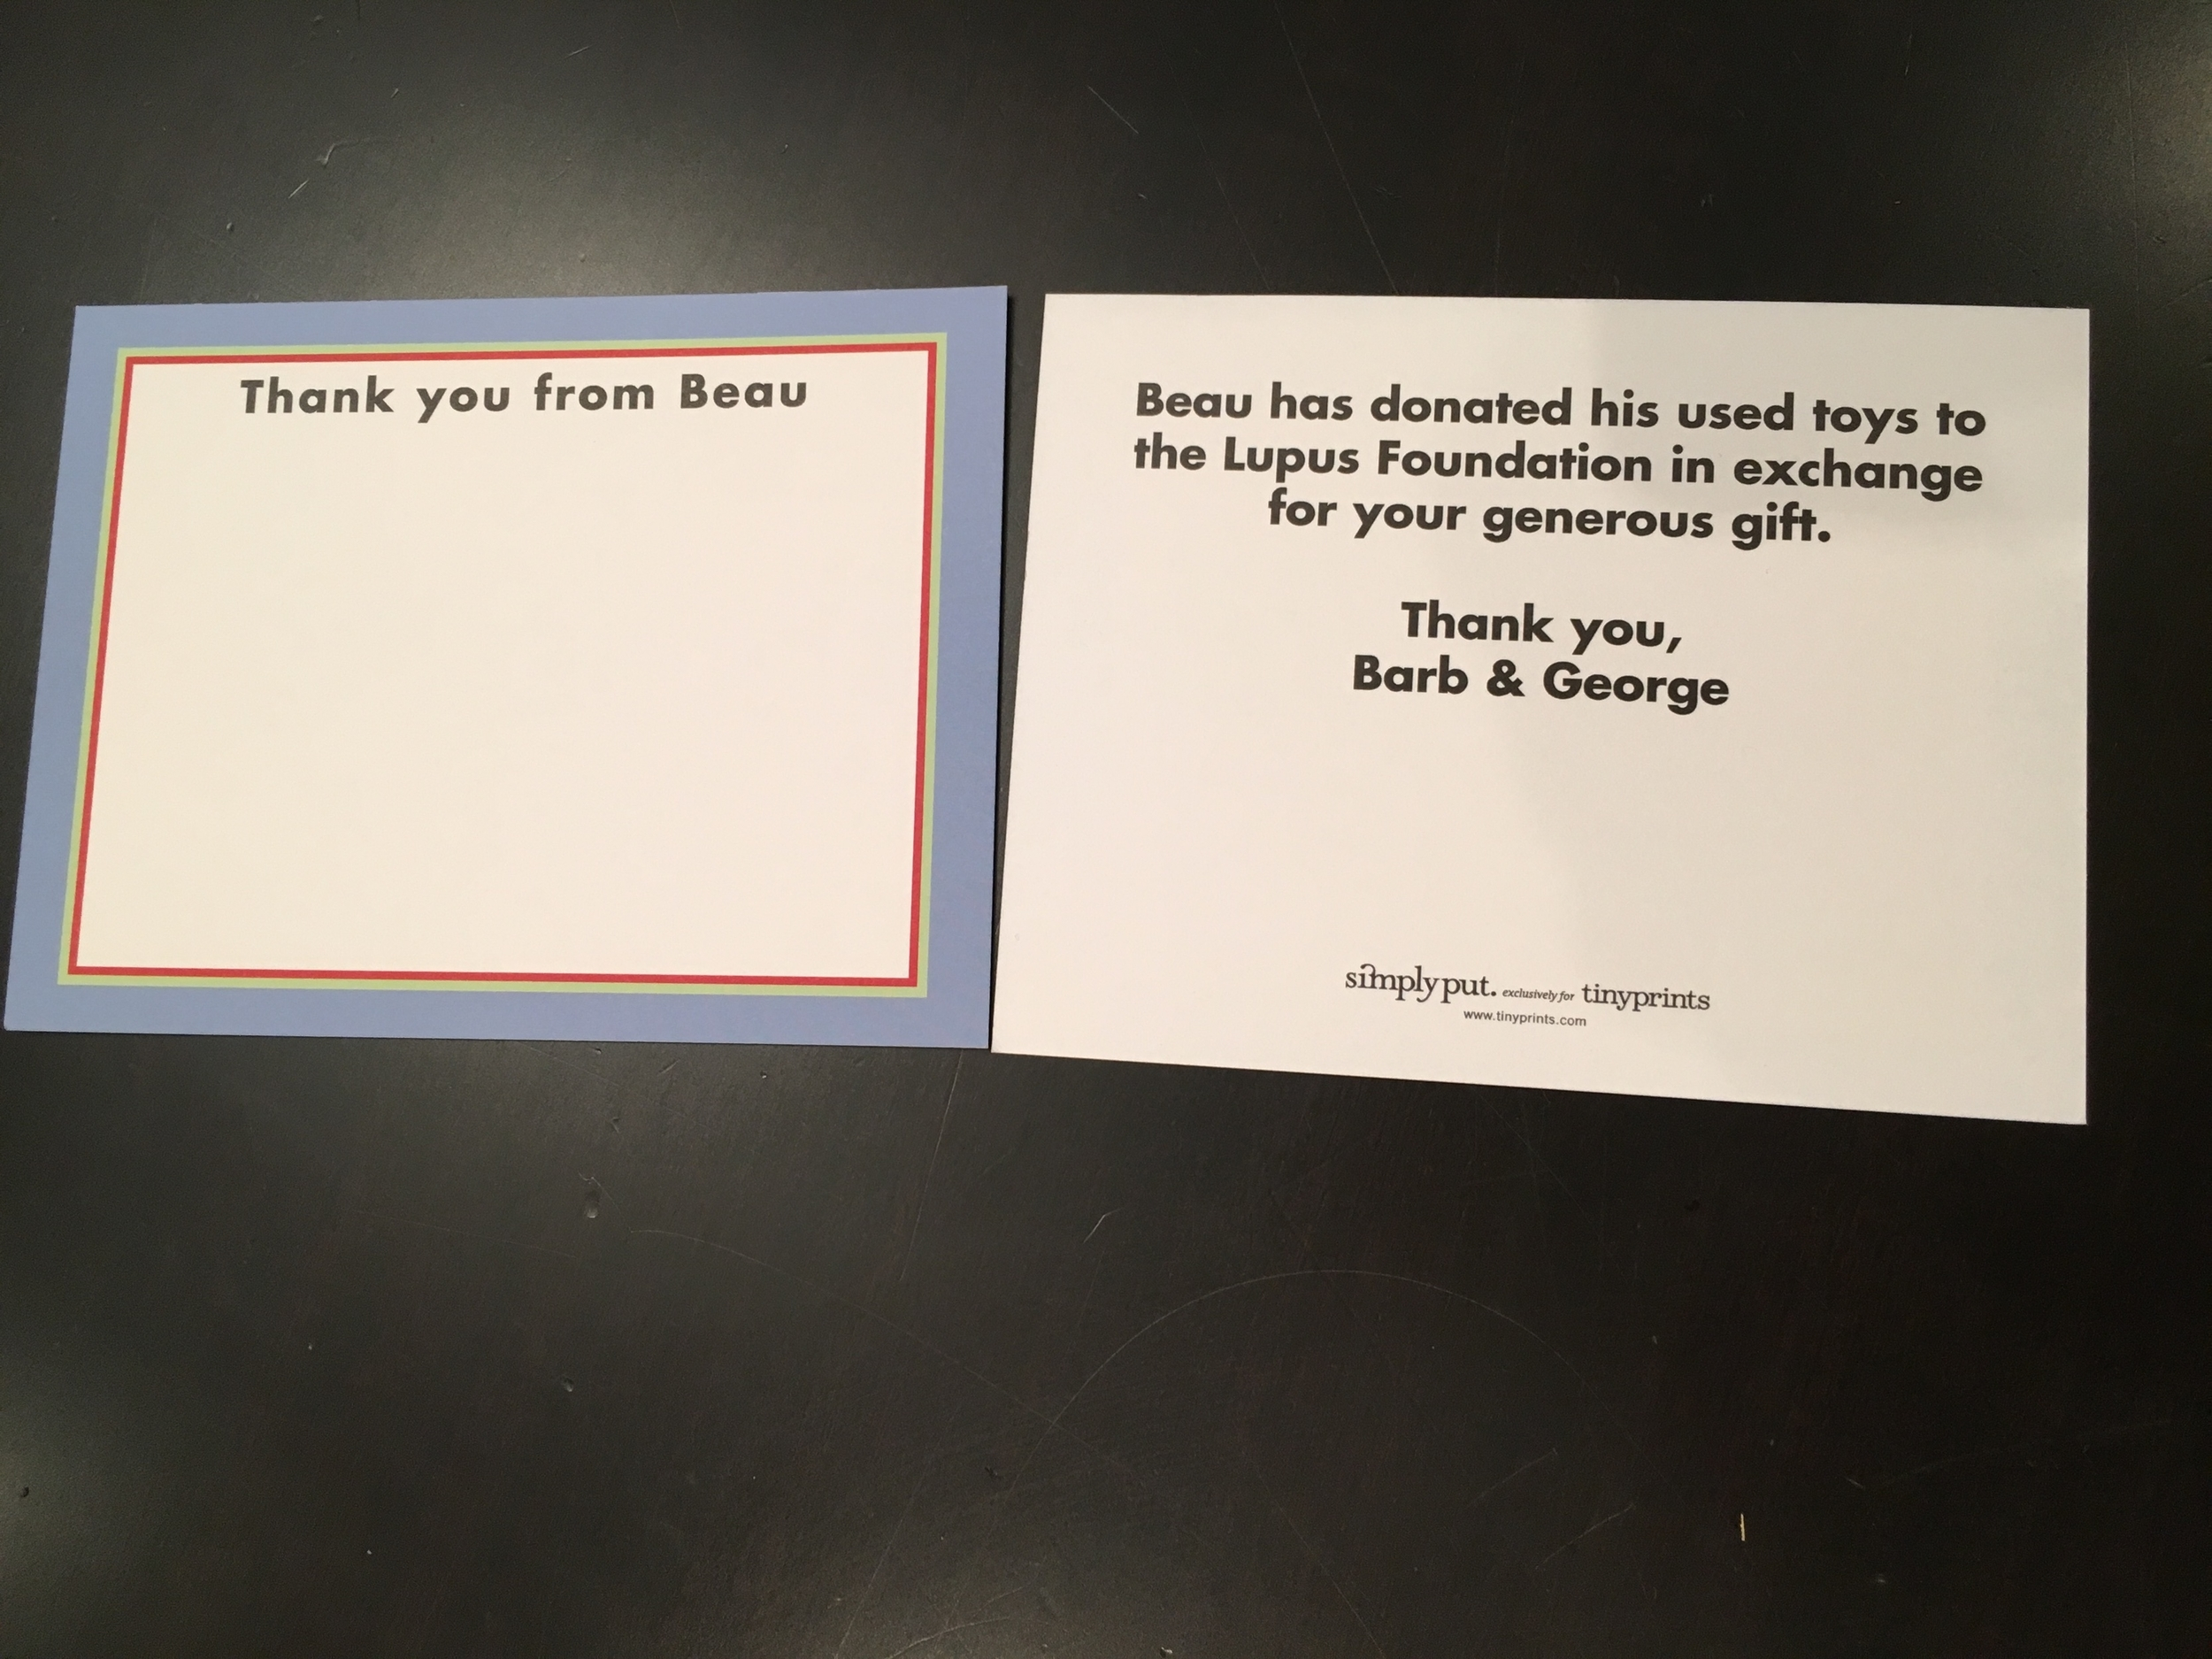 Front and back view of thank you card from a couple of years ago. I wanted my son to experience gifts at his birthday party. So instead of asking people to bring in a toy to be donated, I just had my son choose one of his old toys to donate to Lupus in exchange for his new gift. It was a great way to give and receive.